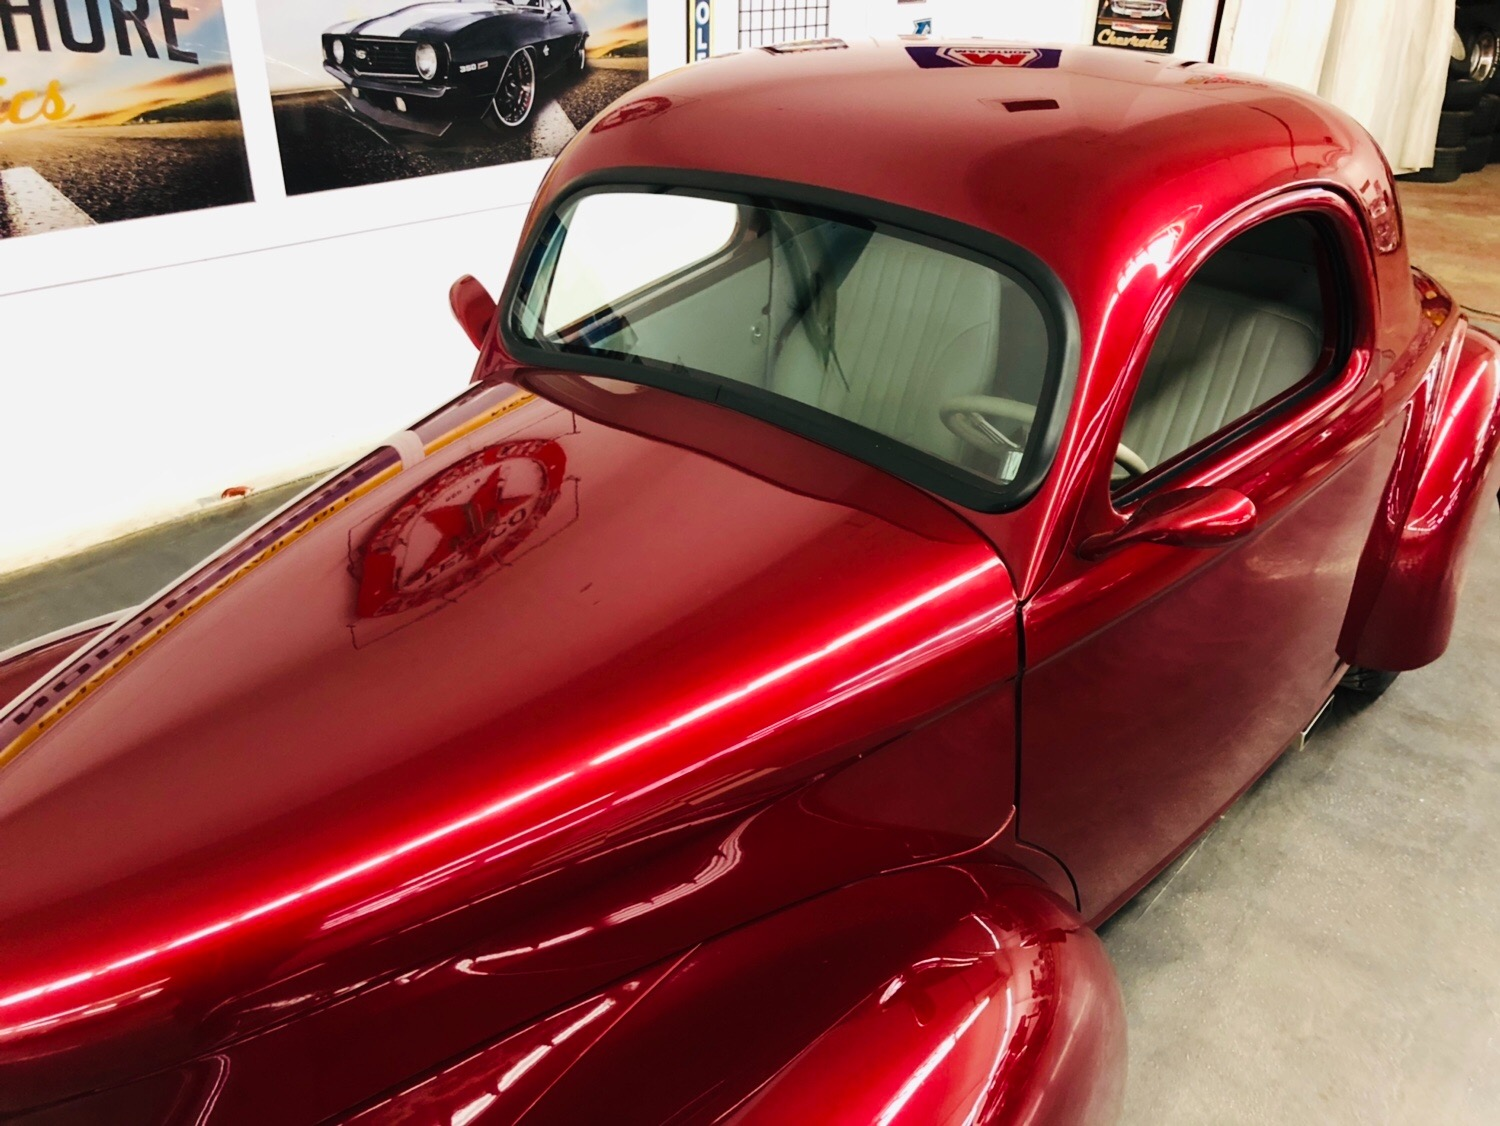 Used 1941 Willys Willys -FRESH BUILT PRO STREET WILLYS- CUSTOM CHASSIS - SHOW AND GO!!-SEE VIDEO | Mundelein, IL